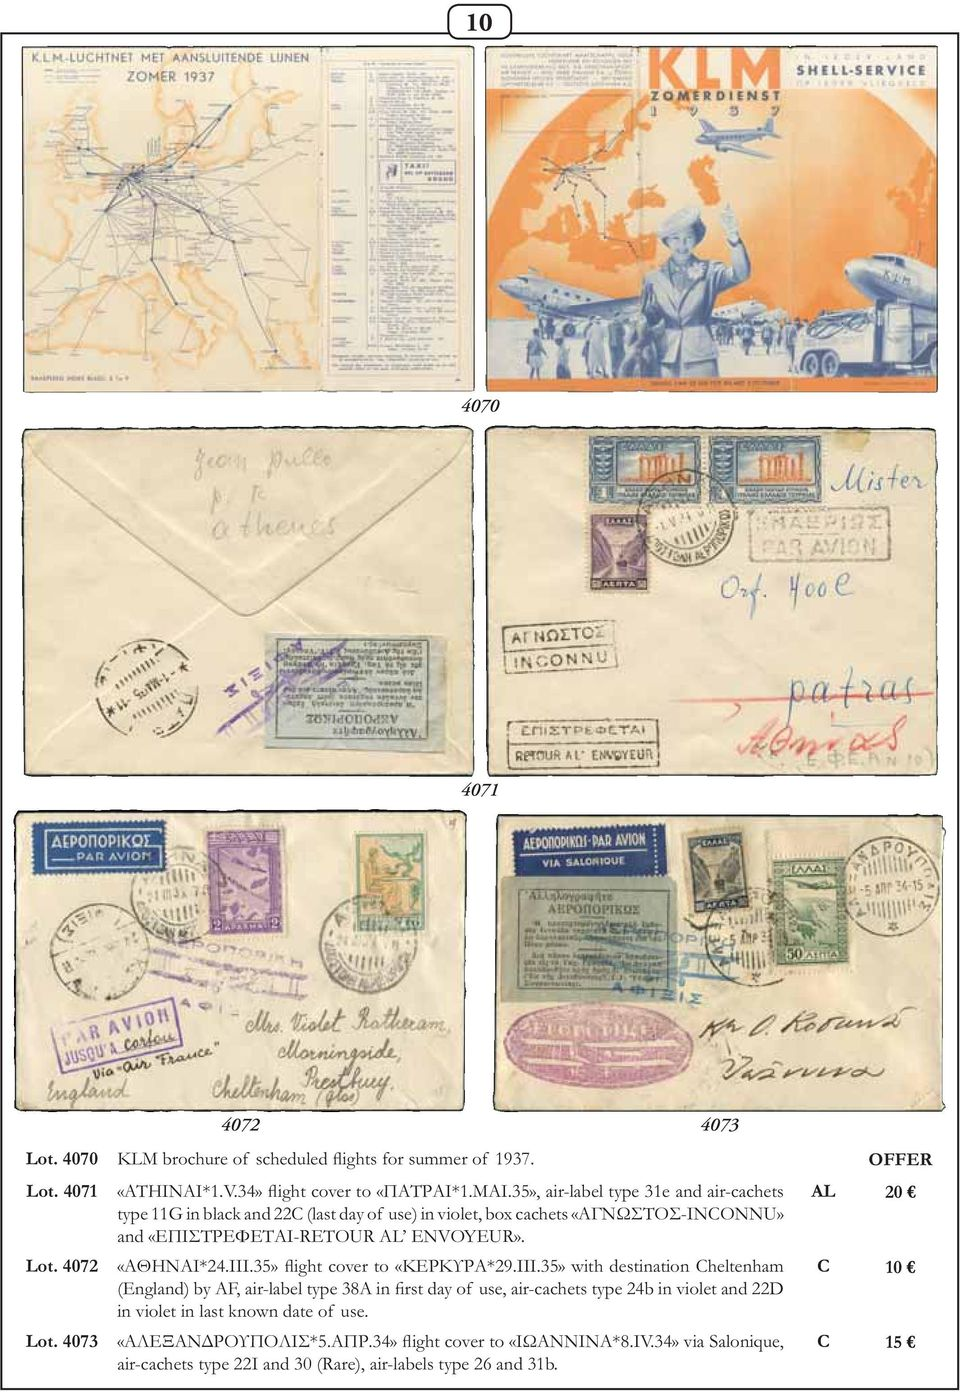 III.35» flight cover to «ΚΕΡΚΥΡΑ*29.III.35» with destination Cheltenham (England) by AF, air-label type 38A in first day of use, air-cachets type 24b in violet and 22D in violet in last known date of use.